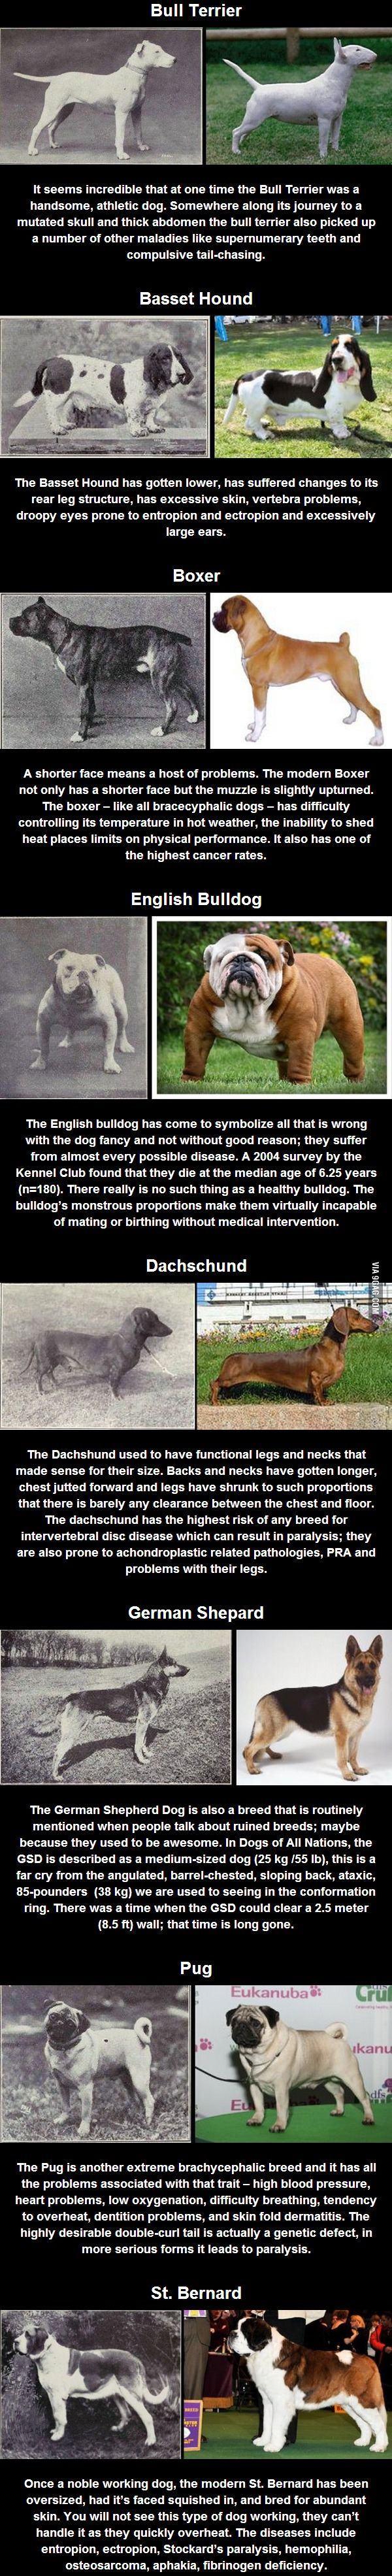 Please read this carefully and think twice before supporting unethical breeding.